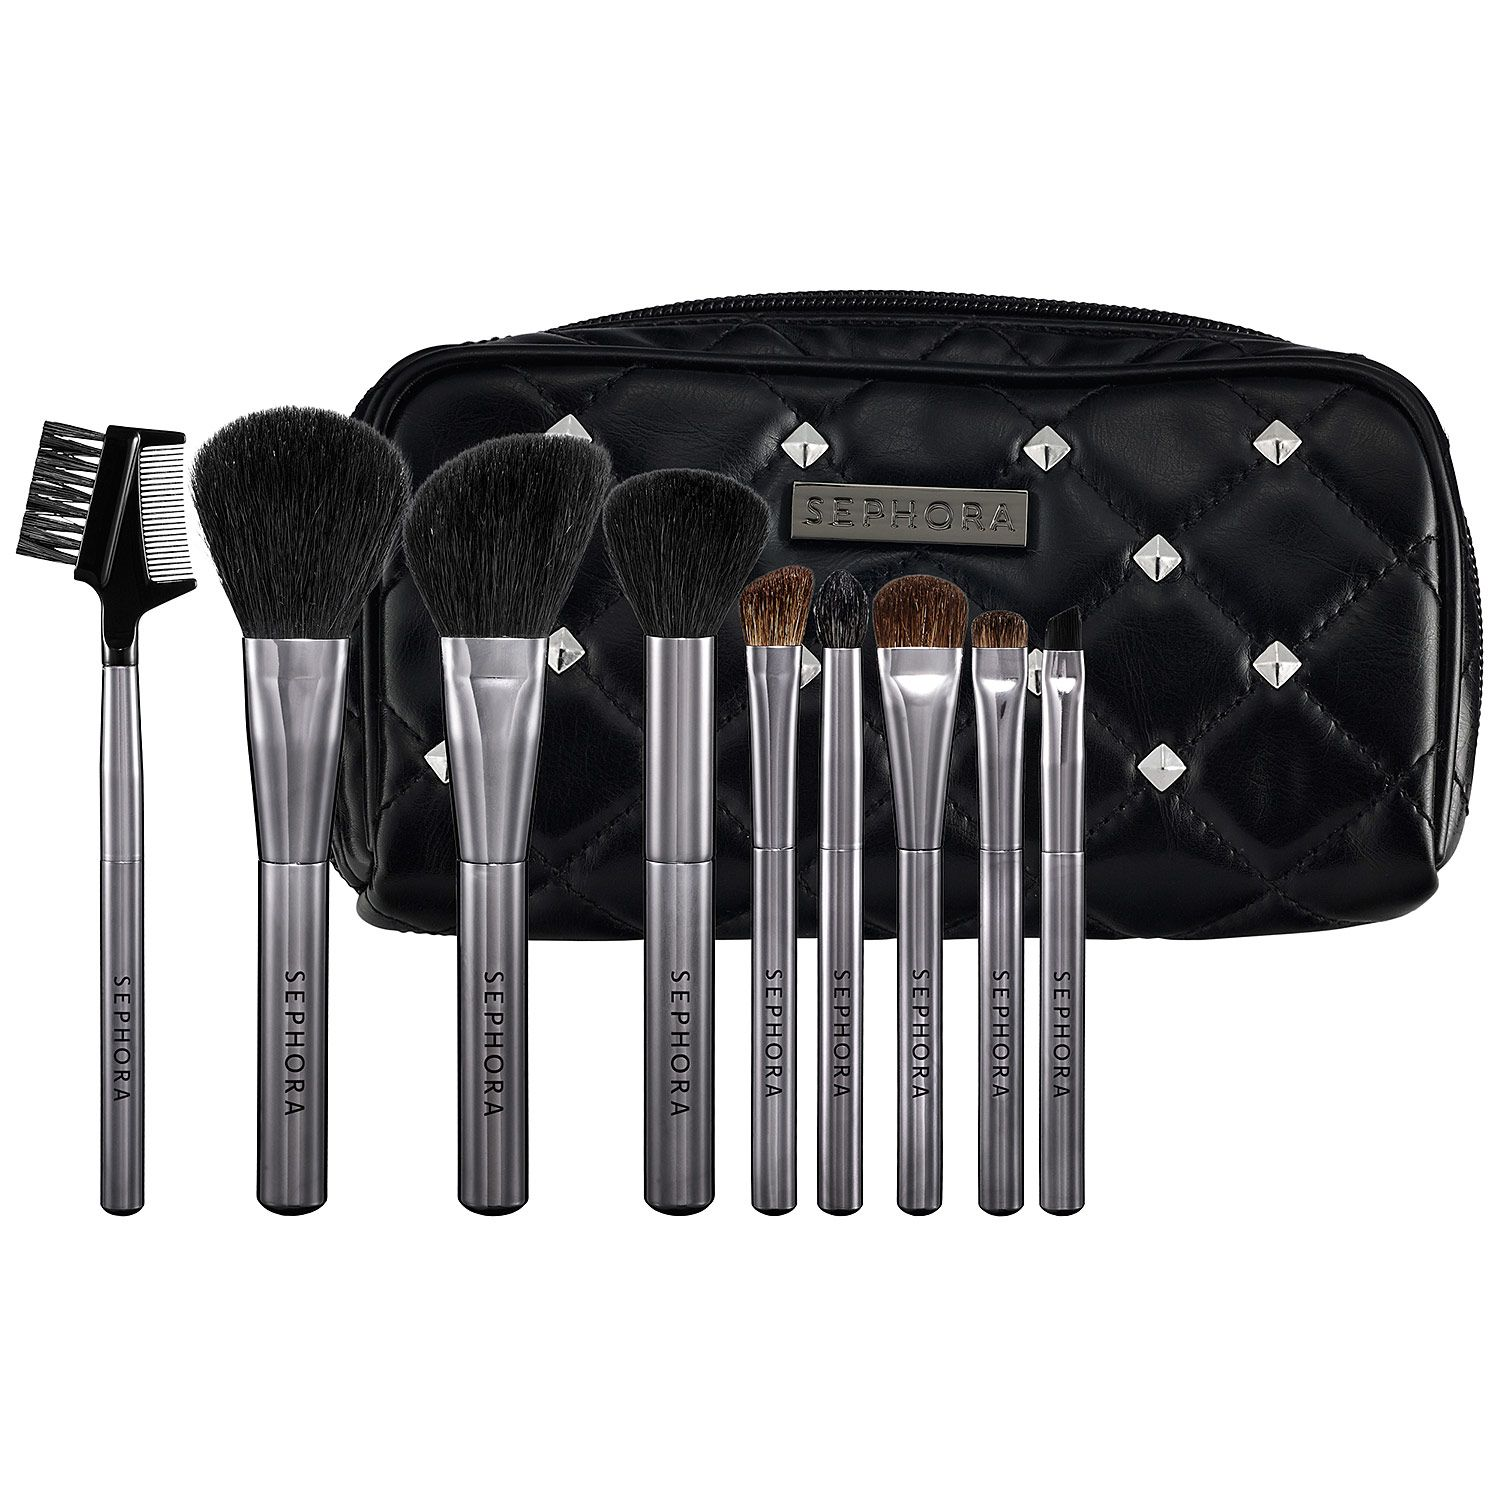 New at Sephora: SEPHORA COLLECTION Tough Love Studded Pouch Brush Set #brushes #brushsets